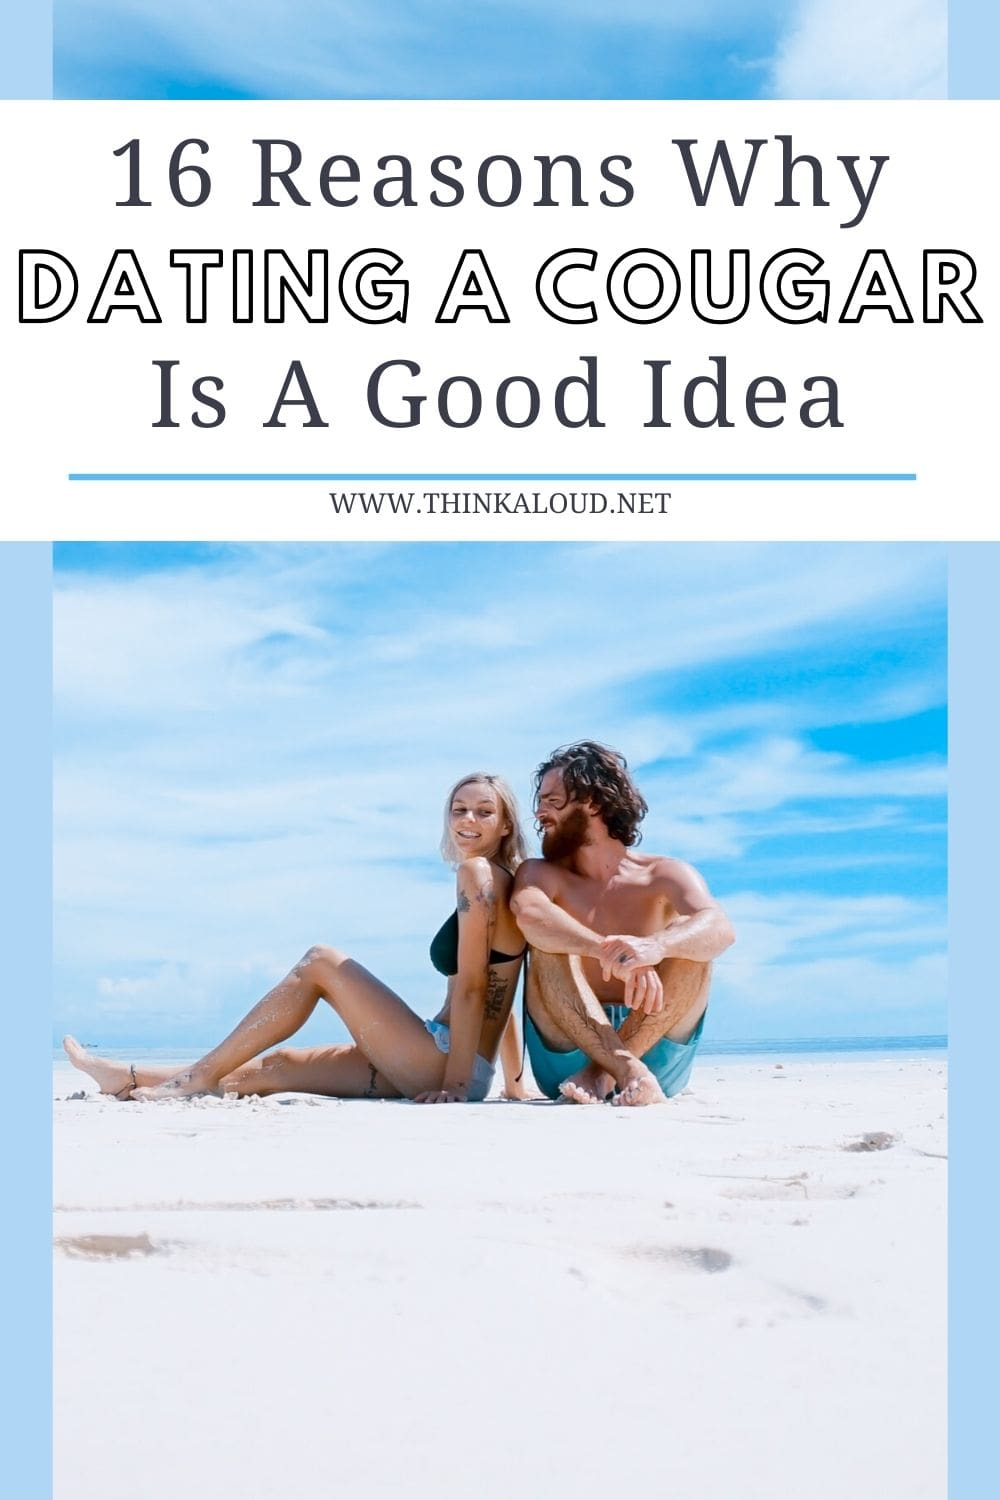 16 Reasons Why Dating A Cougar Is A Good Idea